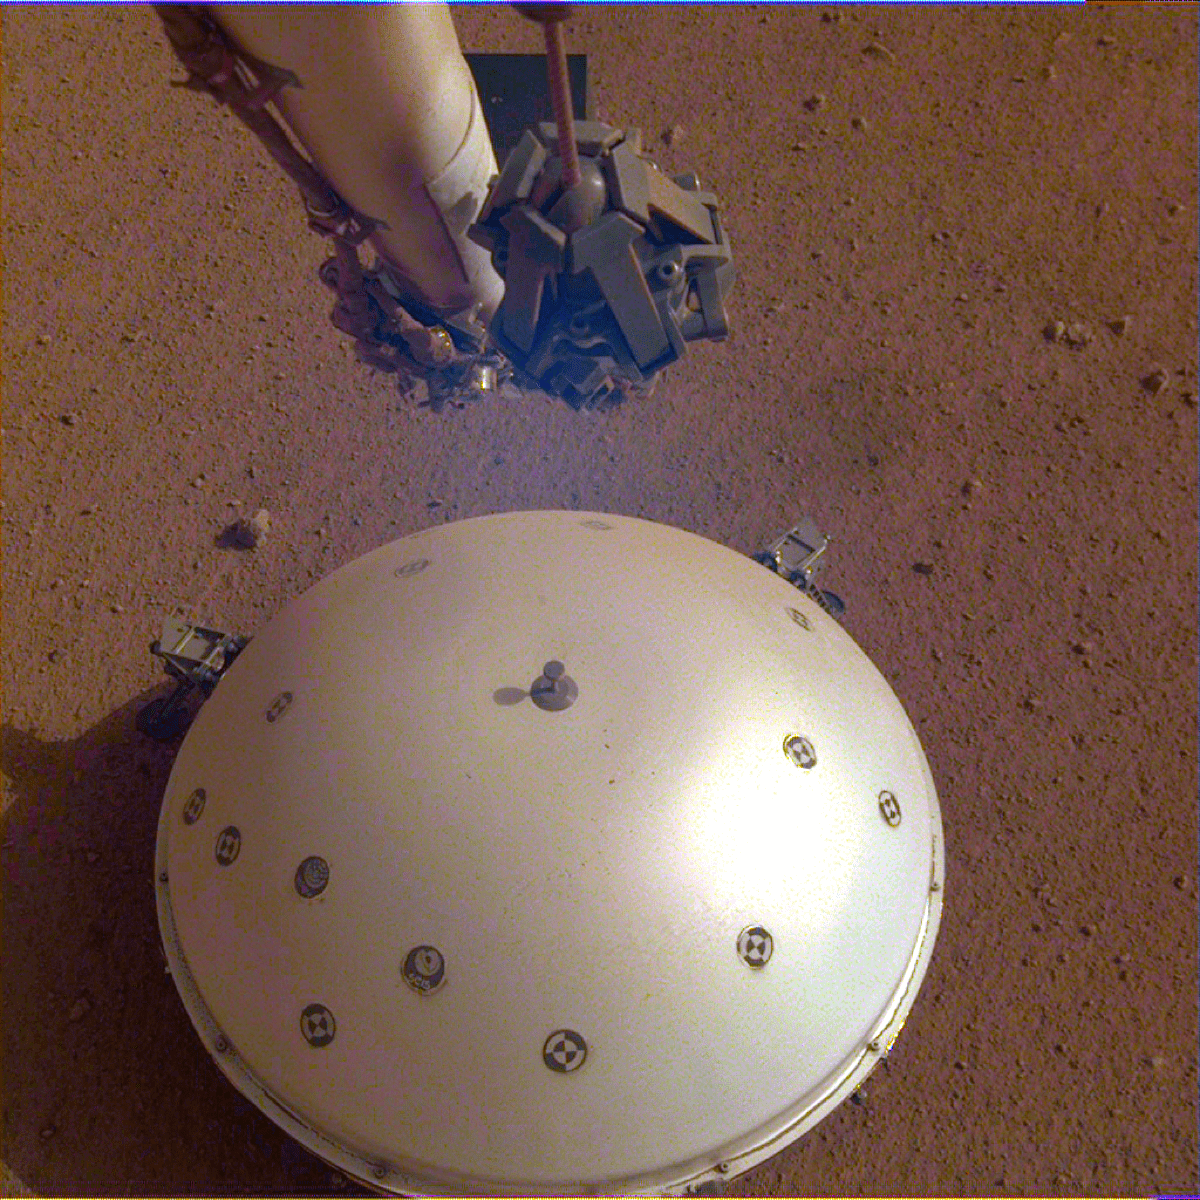 a robotic arm above a white dome structure on a red earth landscape